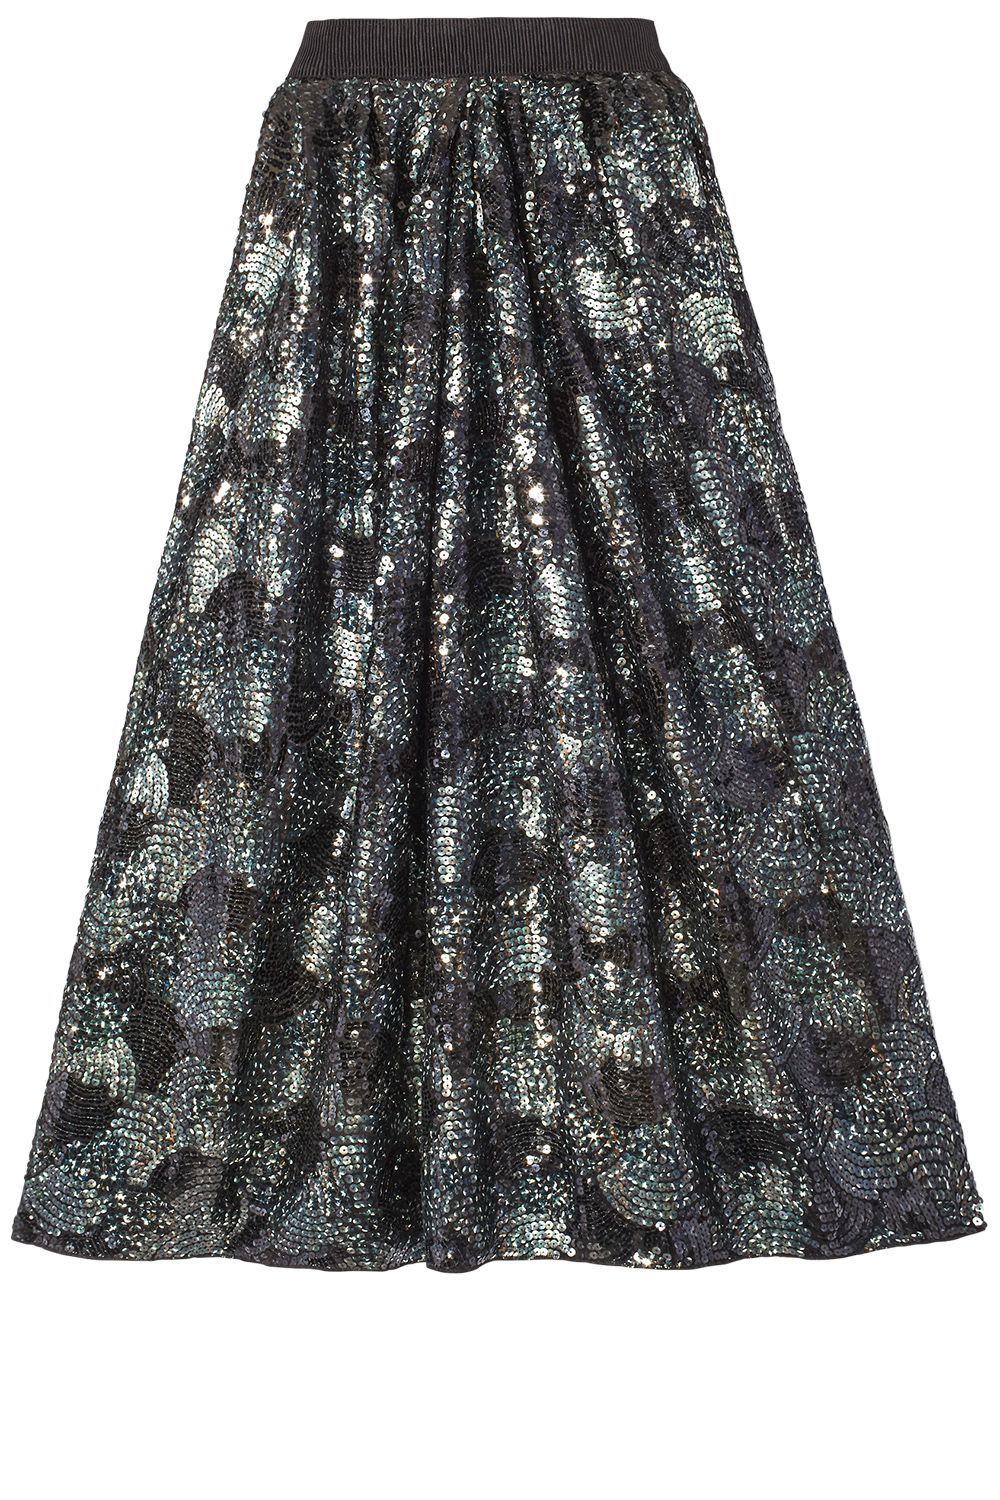 """<p><strong>Marc Jacobs</strong> skirt, $3,800, <a href=""""http://www.marcjacobs.com/"""" target=""""_blank"""">marcjacobs.com</a>.</p>"""